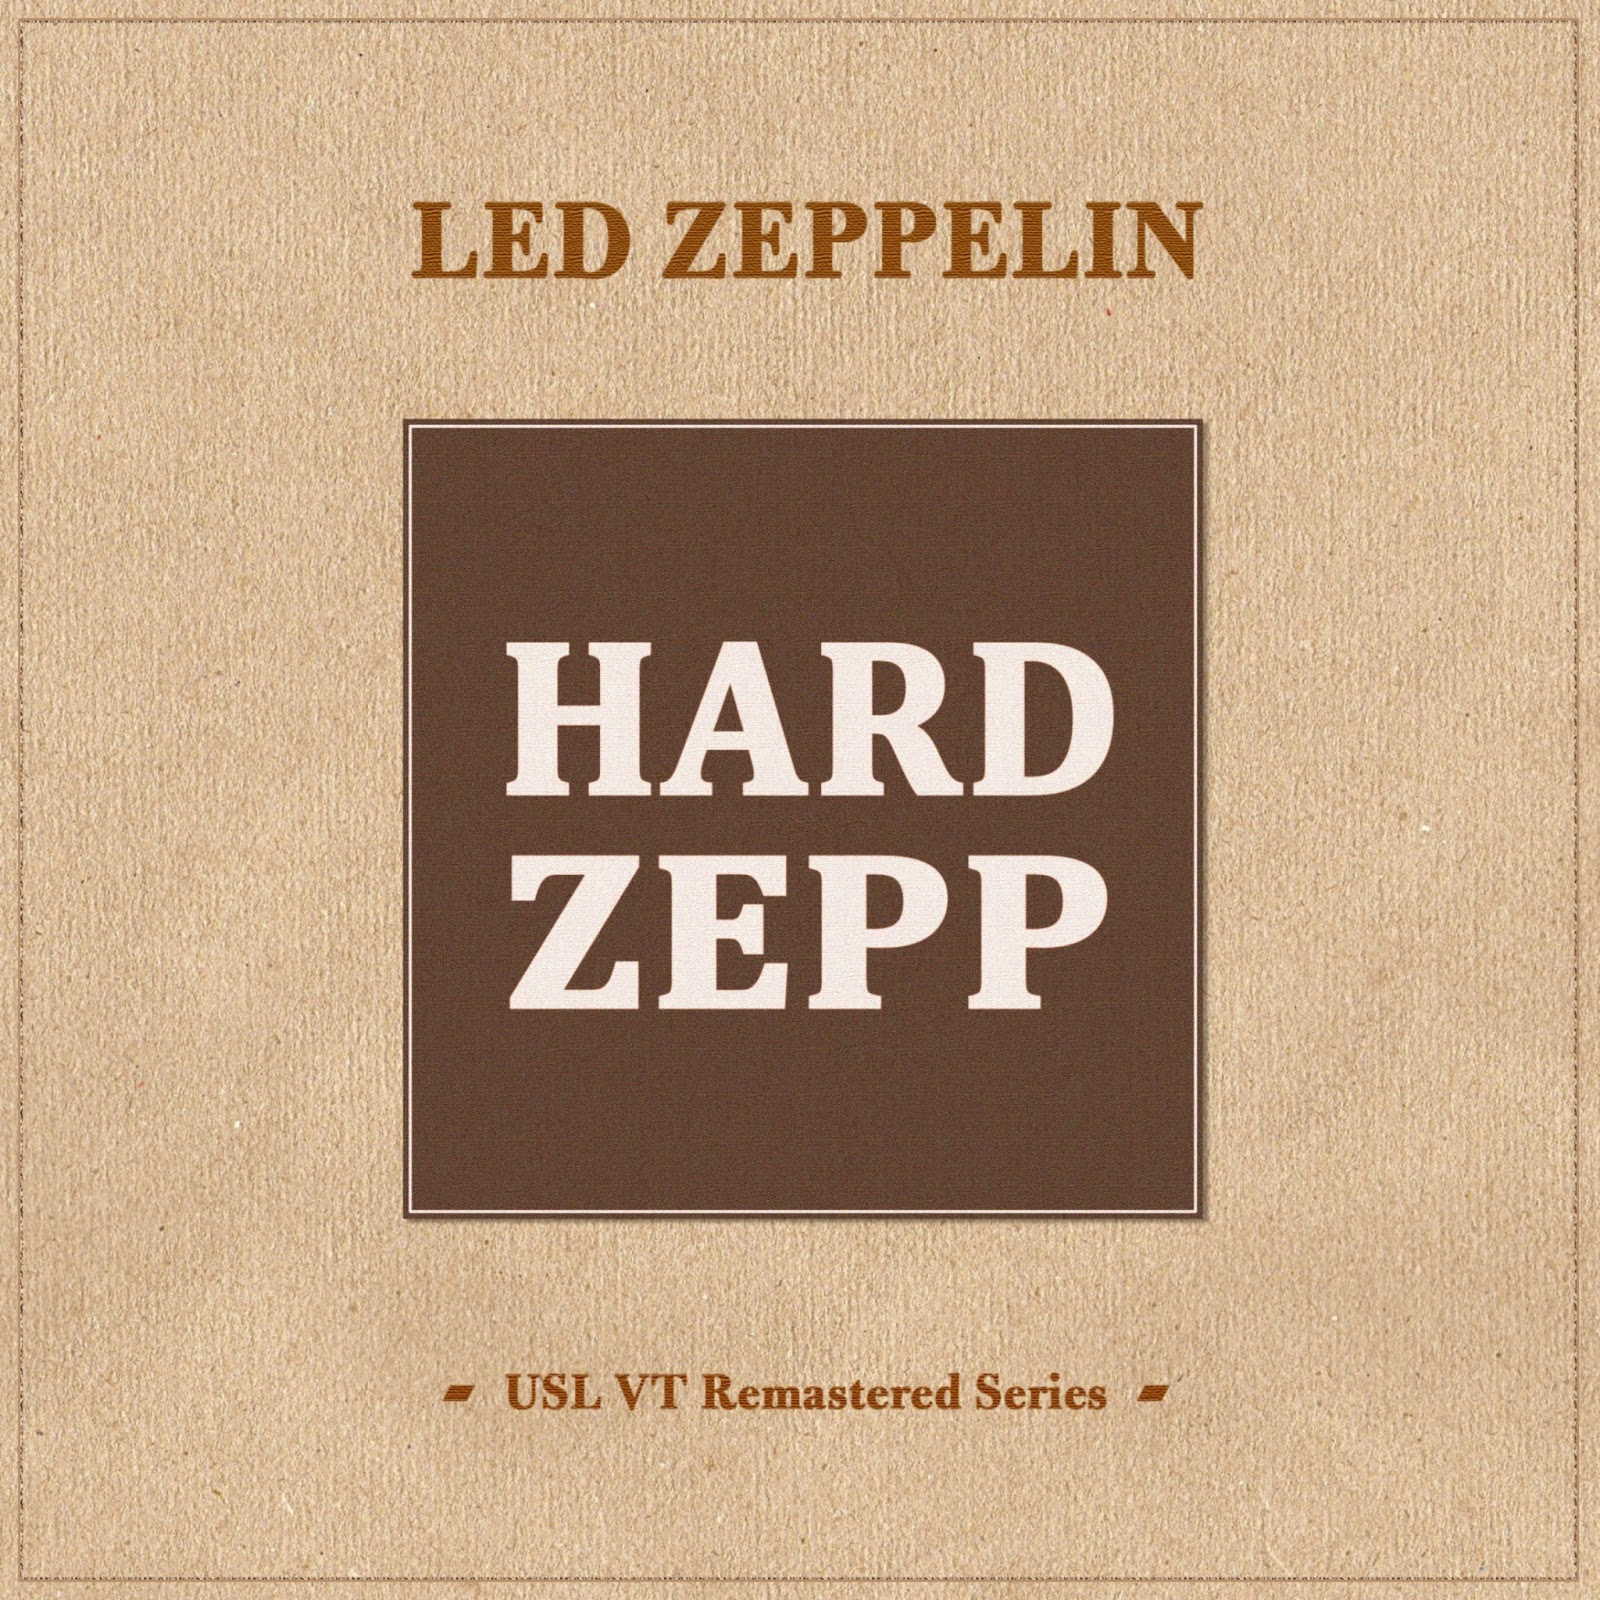 2012 - Led Zeppelin - Hard Zepp USL VT Remastered series